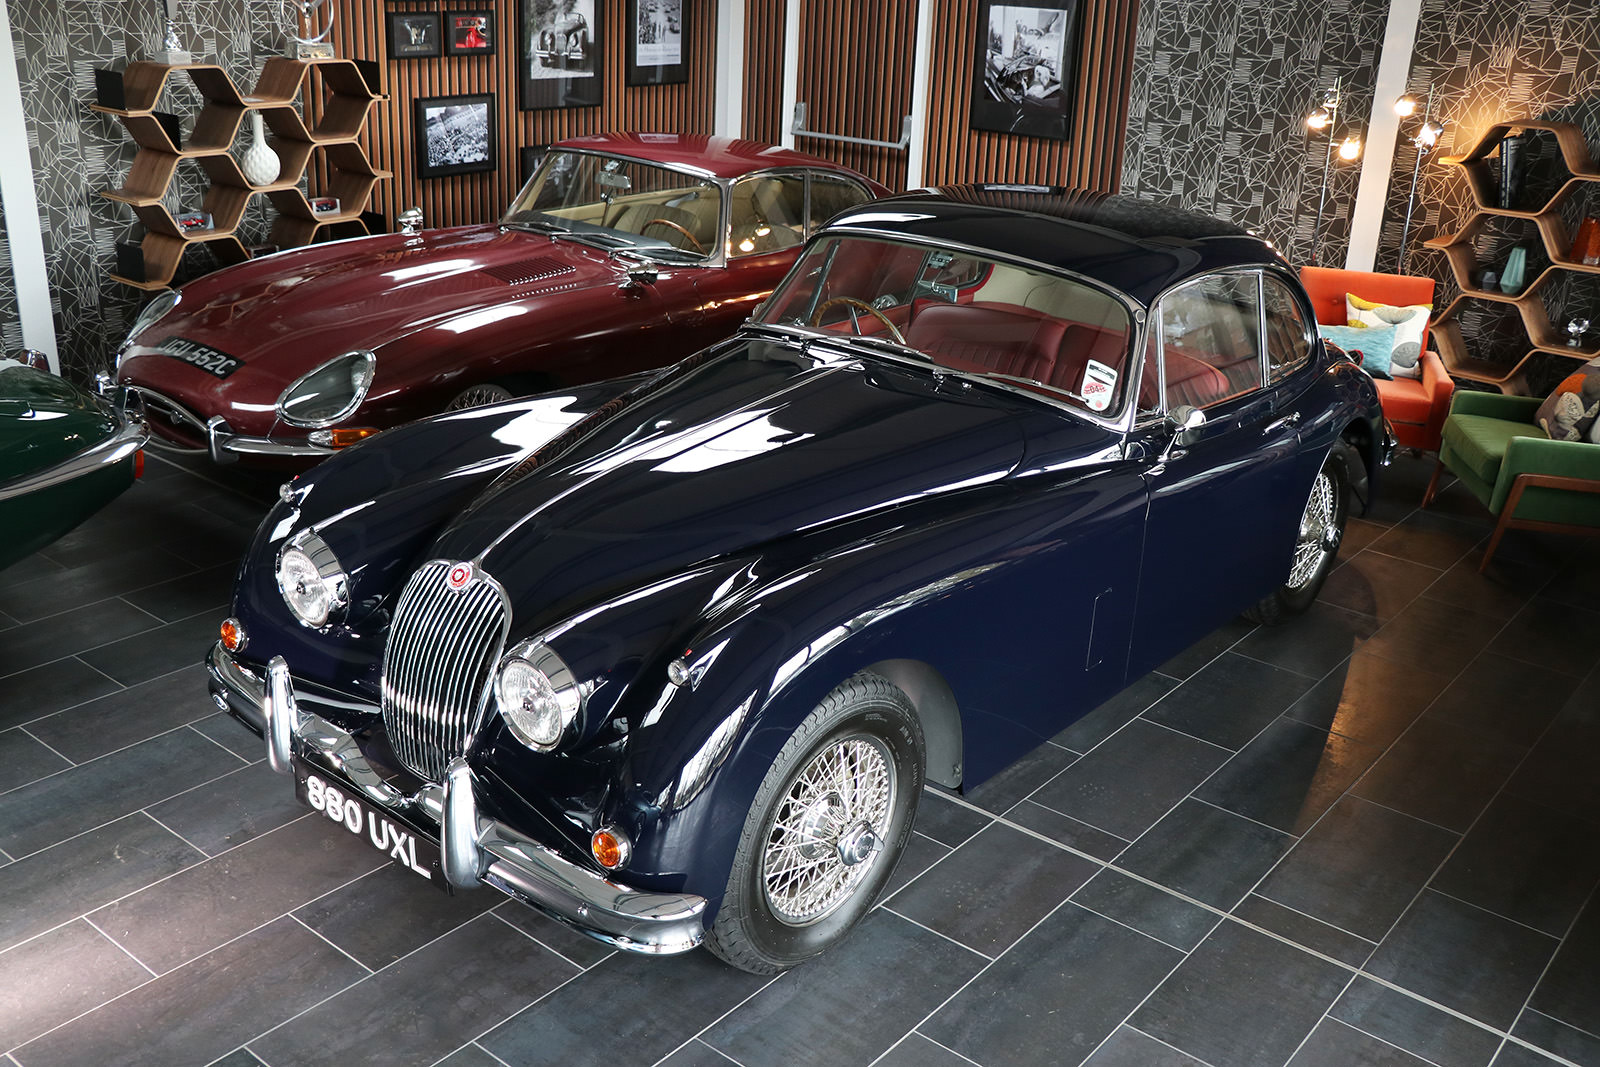 Jaguar_xk150_1959_sayer selection_wilkinson_blue_red_web_2.jpg